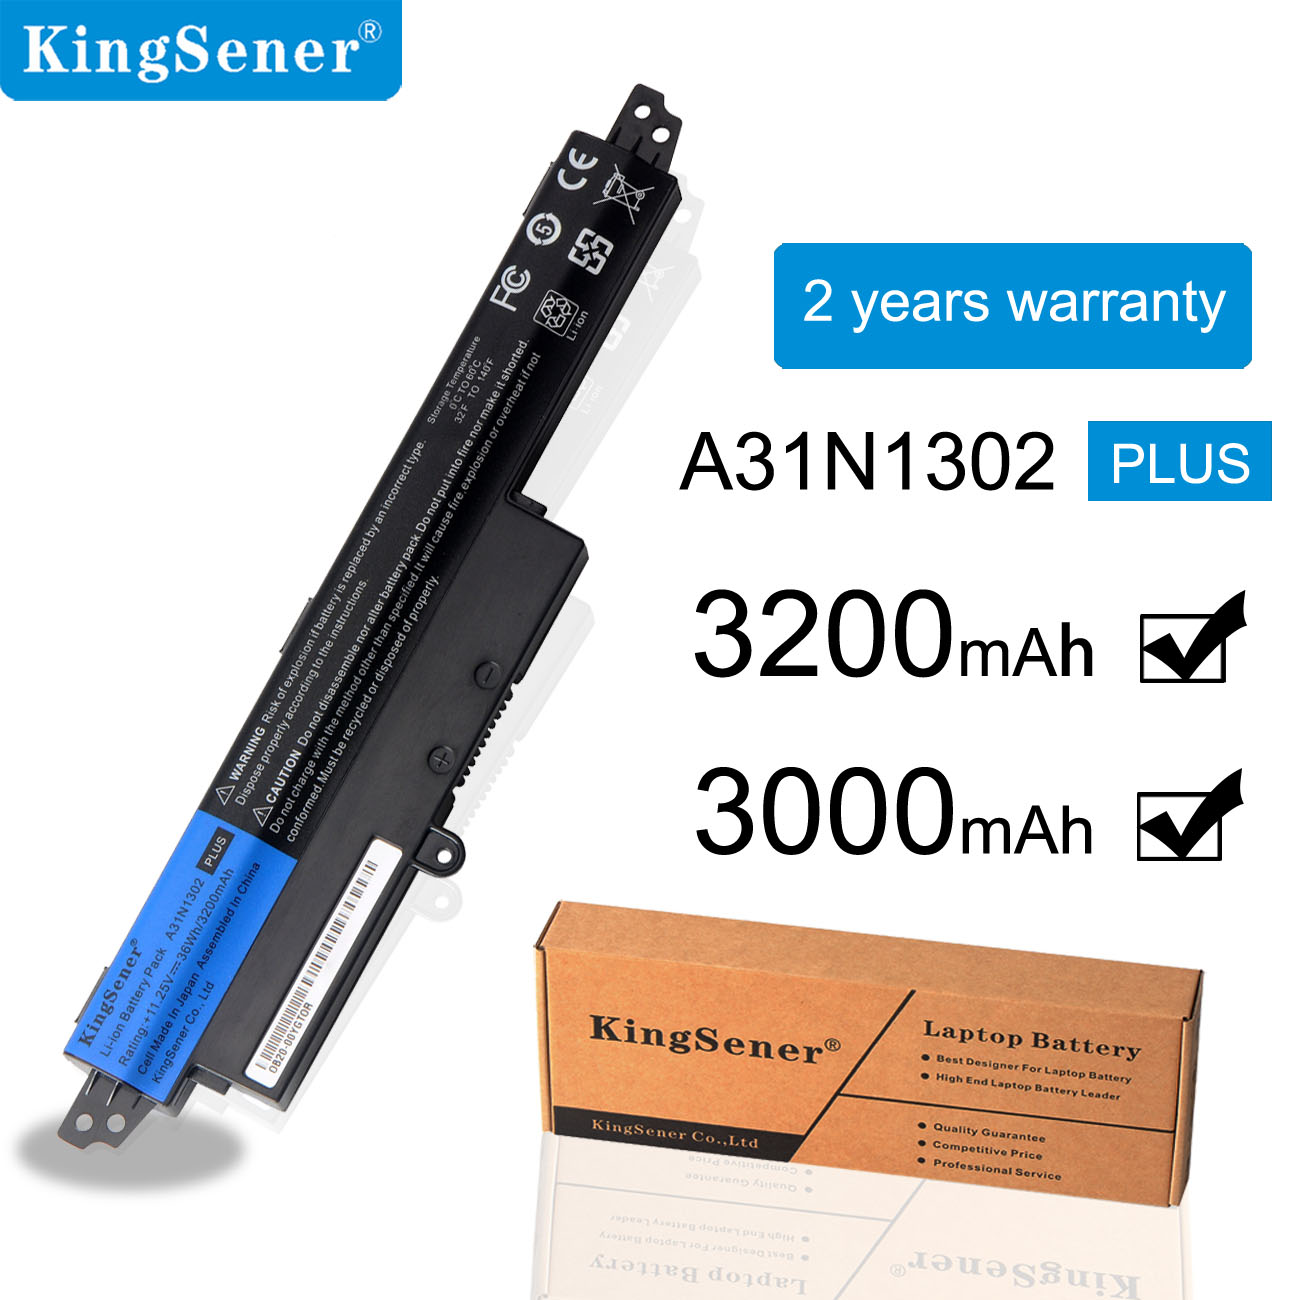 KingSener Korea Cell A31N1302 Battery For ASUS VivoBook X200CA X200MA X200M X200LA F200CA X200CA R200CA 11.6